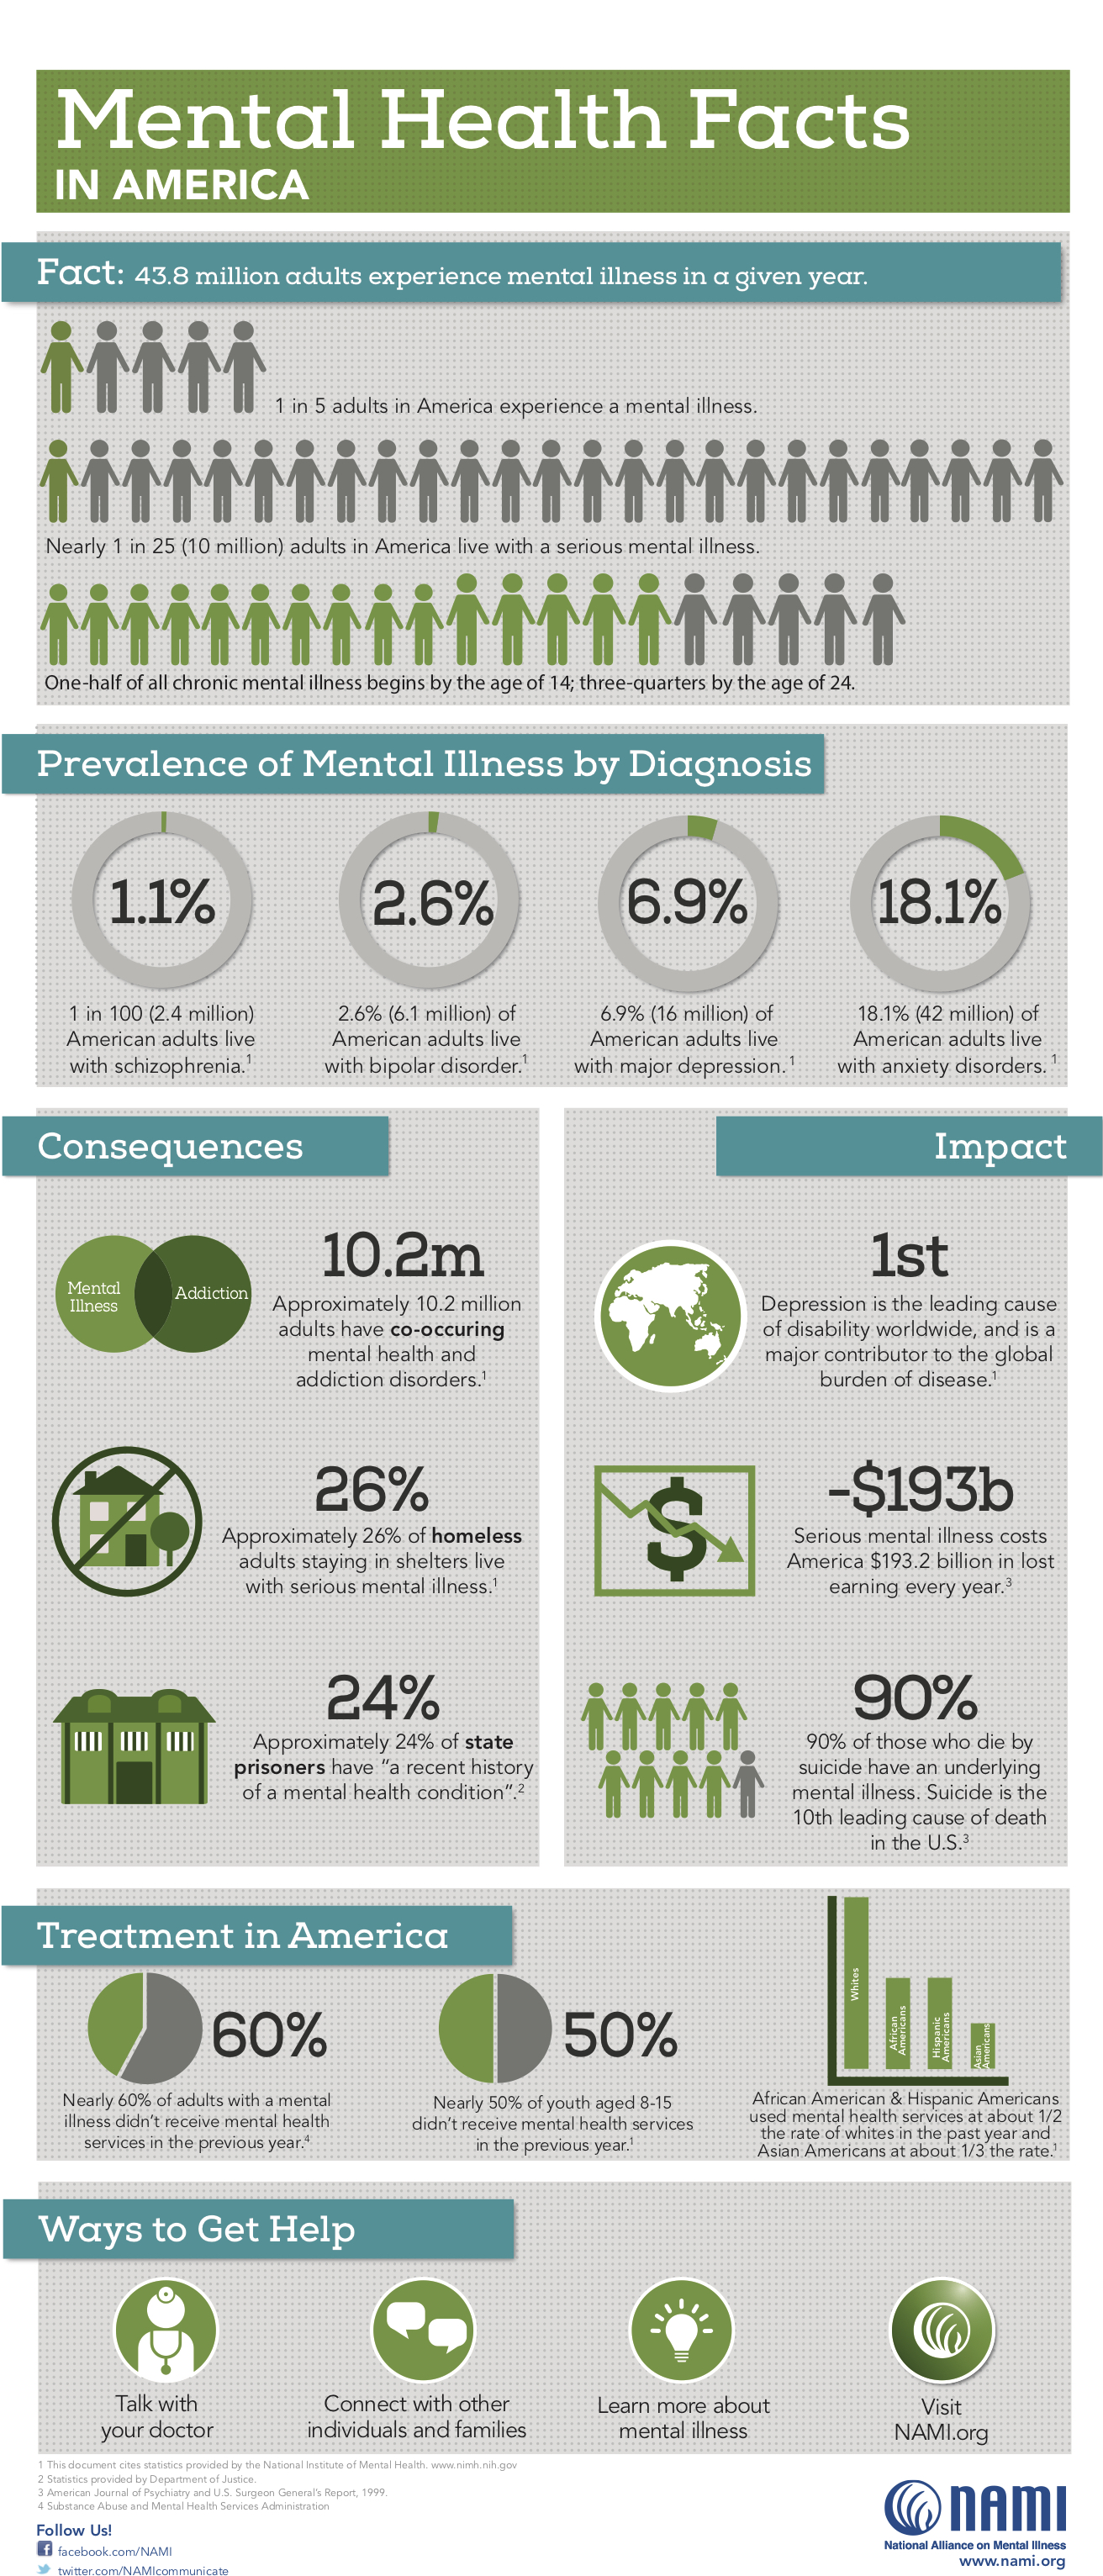 Mental Health Benefits of Tidying Up